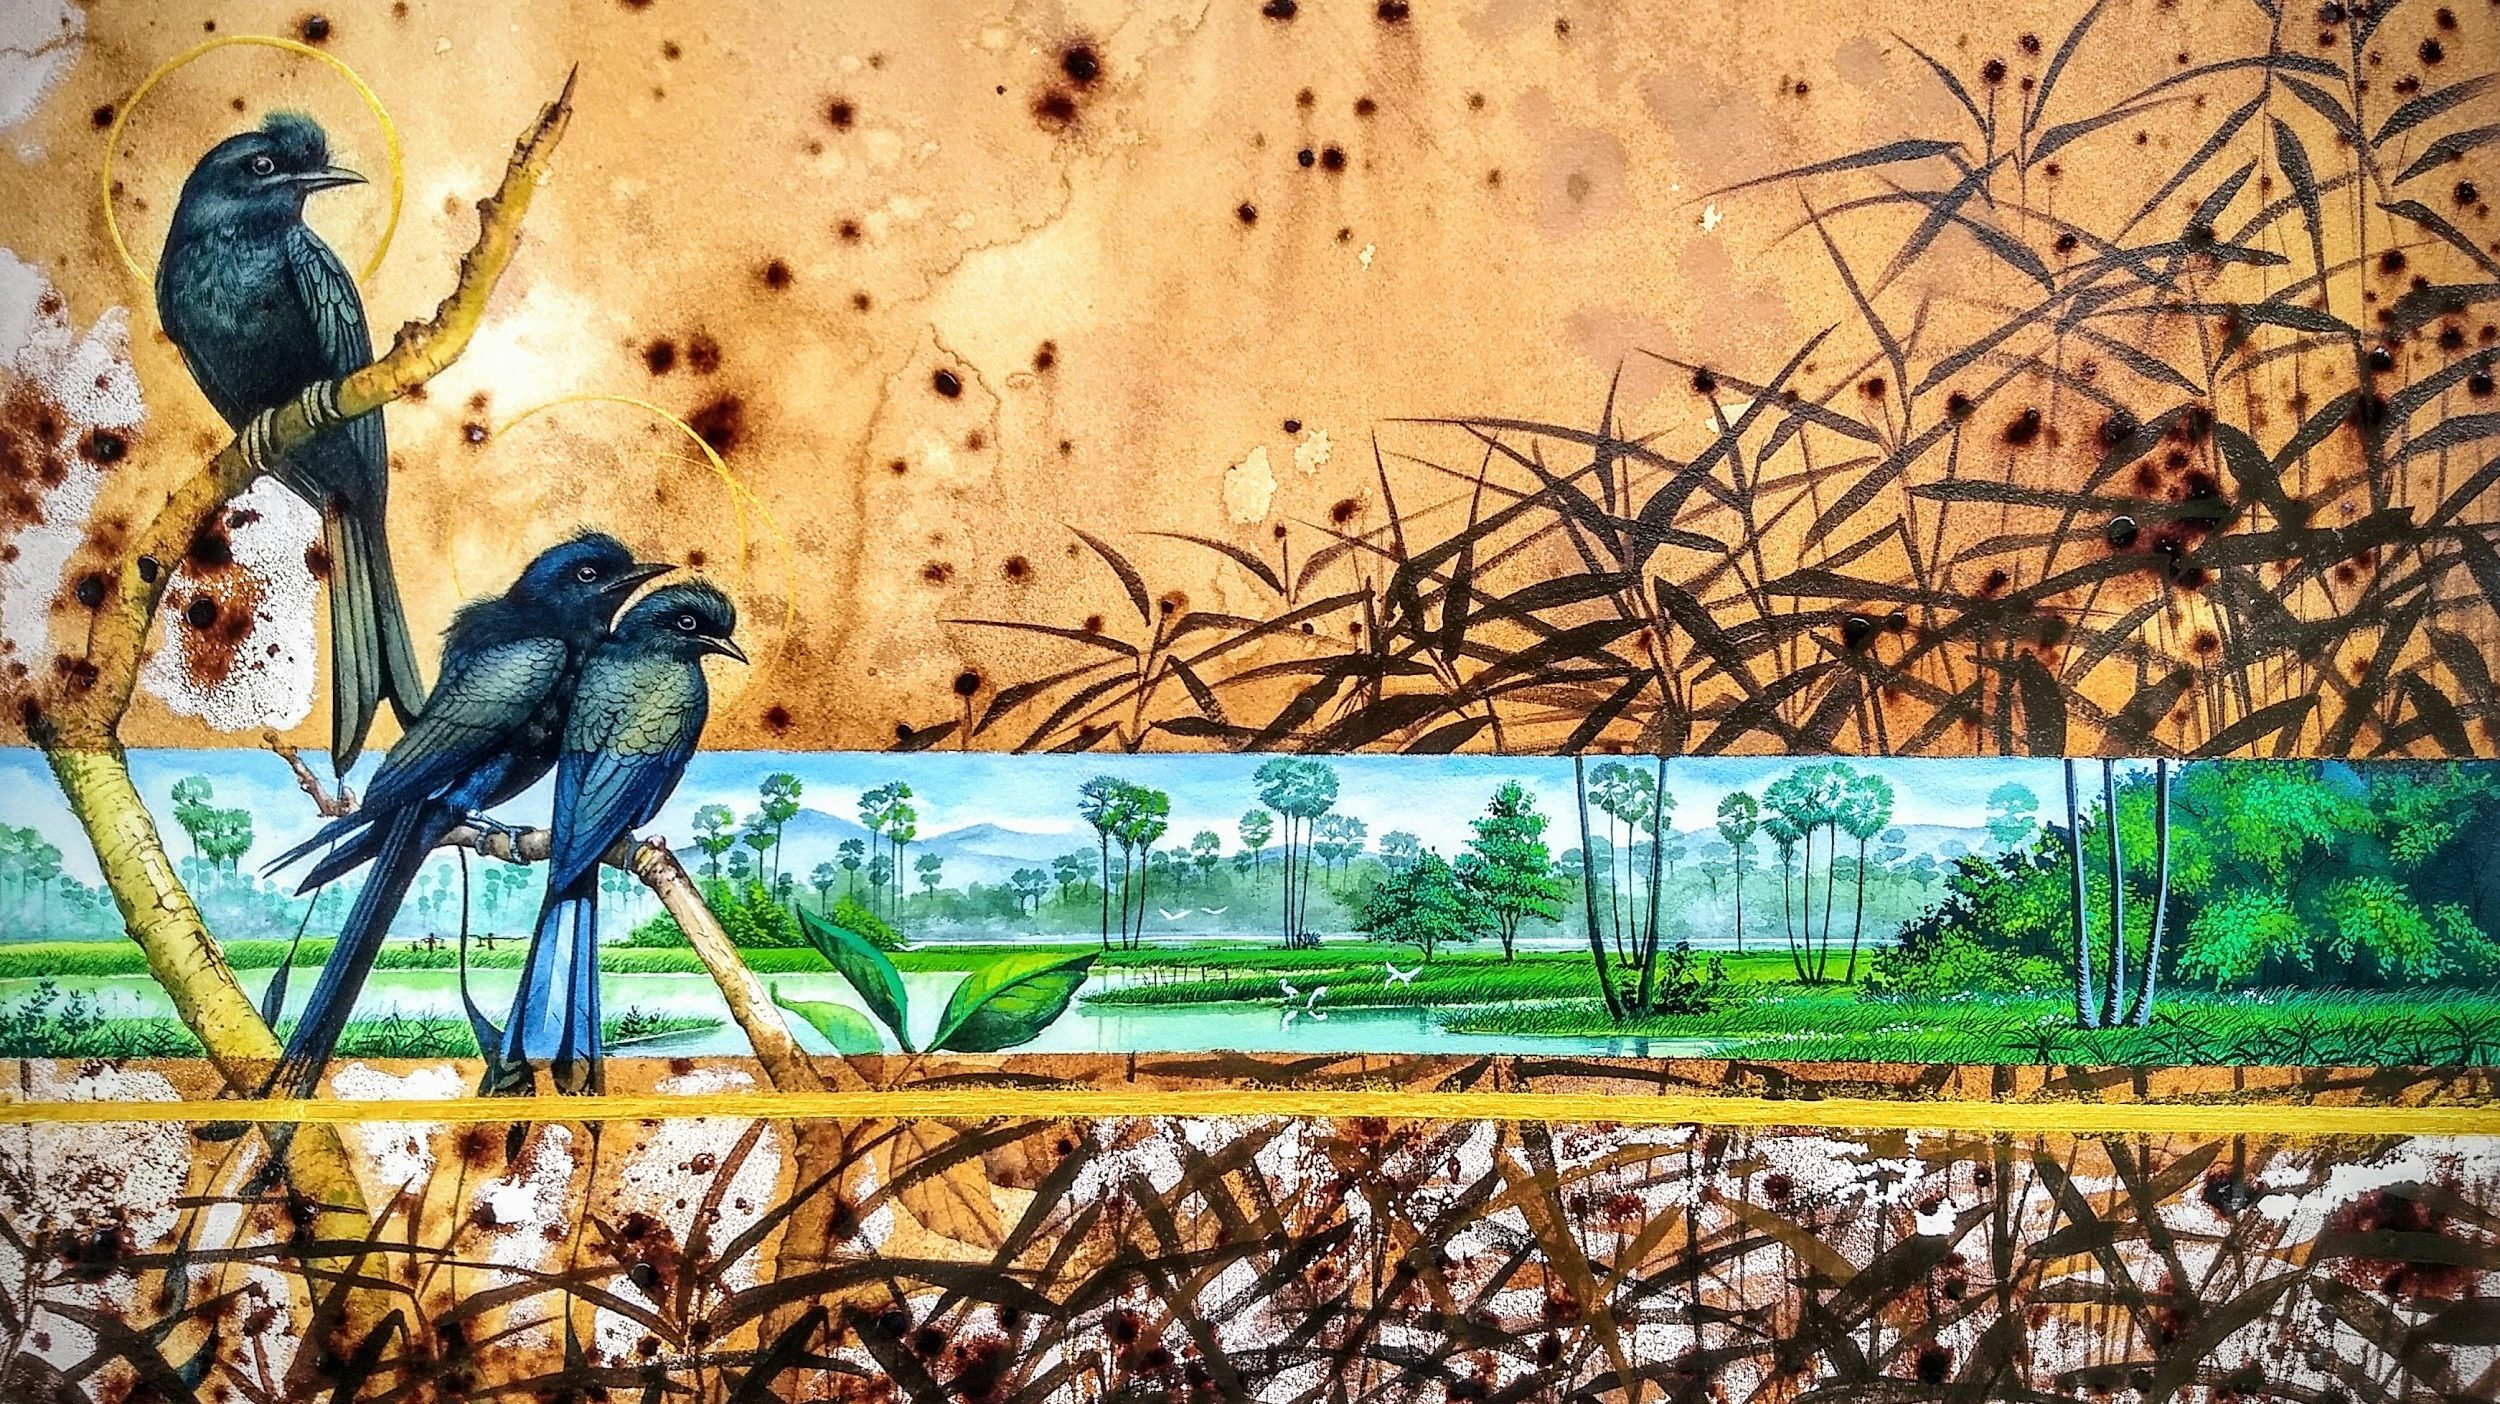 """An """"Out of Control"""" exhibition to raise awareness on wildlife protection and the excesses of society"""